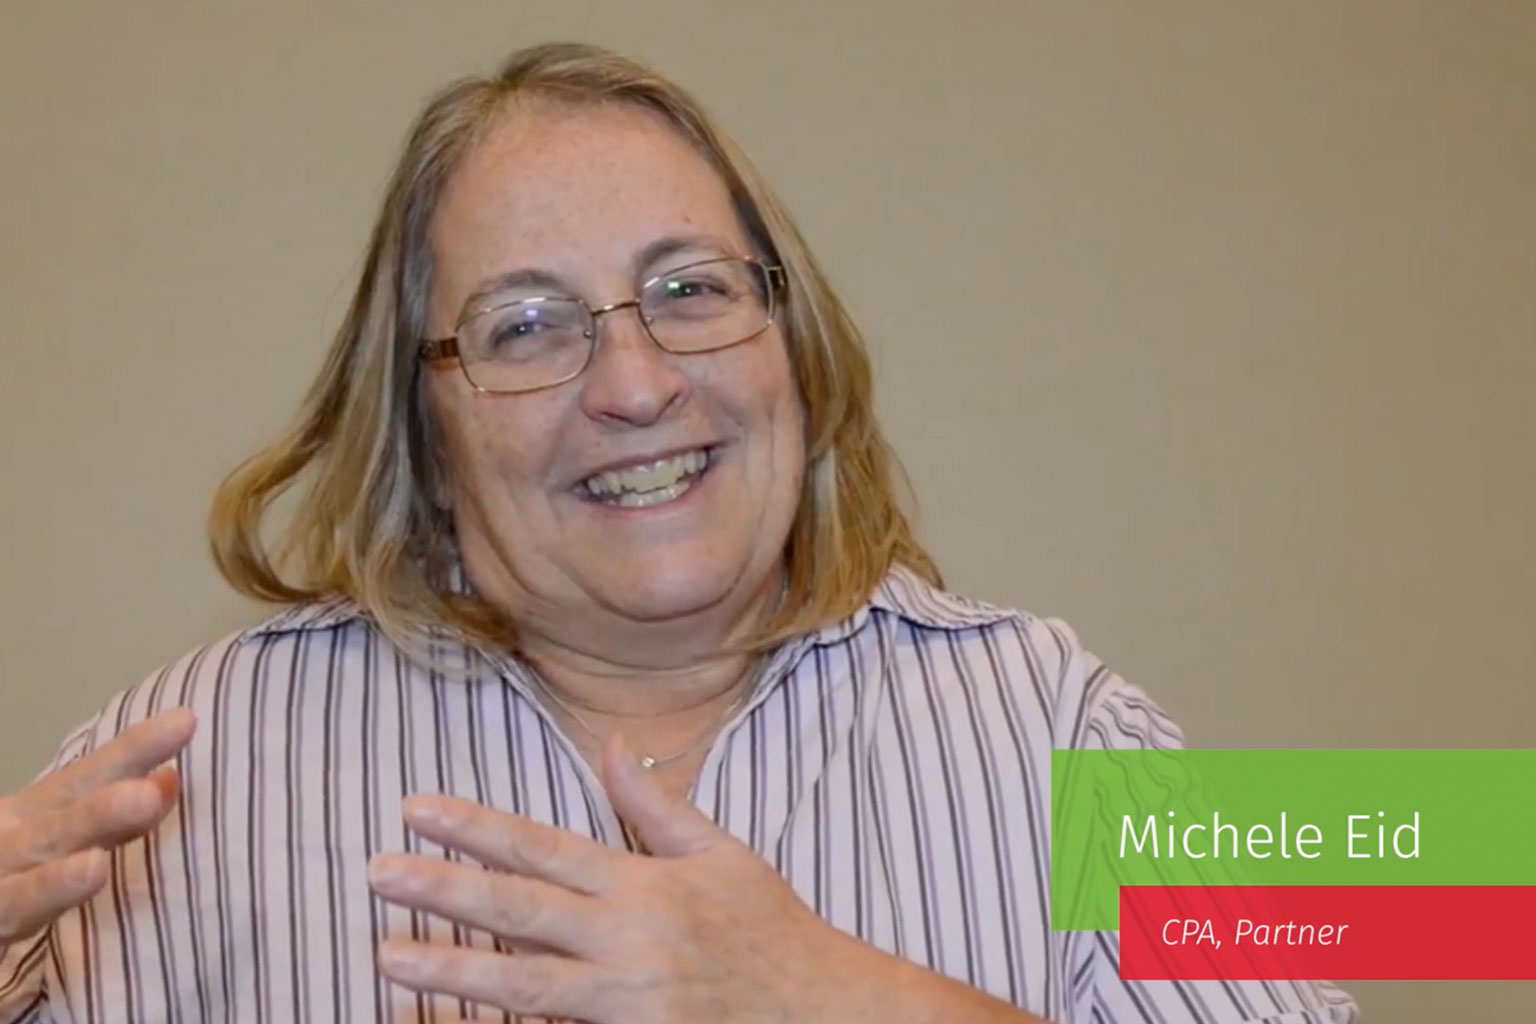 CCH AnswerConnect Testimonial by Michele Eid